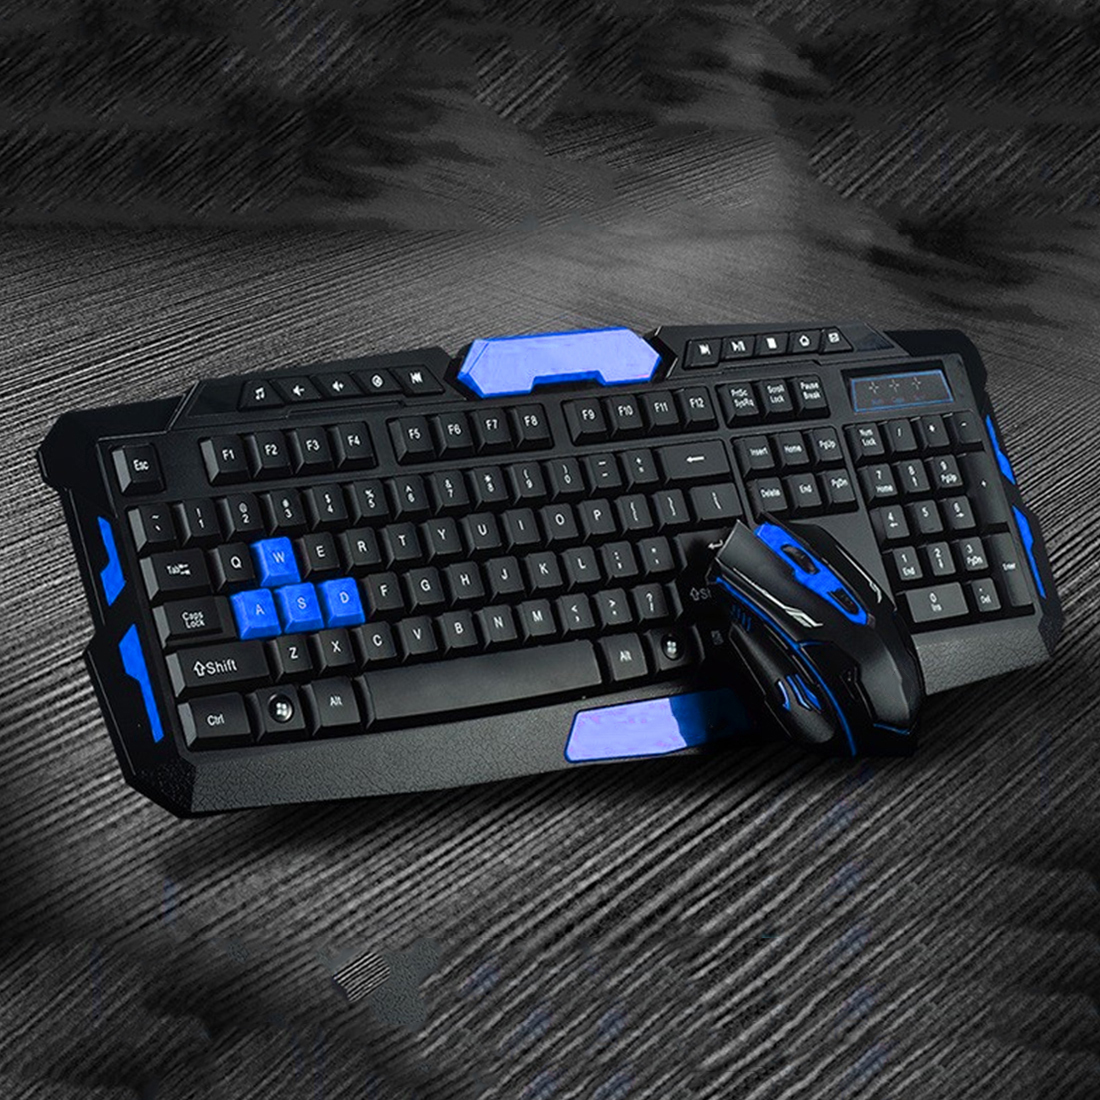 Etmakit New Wireless Keyboard Mouse Set Etmakit New Wireless Keyboard Mouse Set HTB12fGcSVXXXXcdaXXXq6xXFXXXb